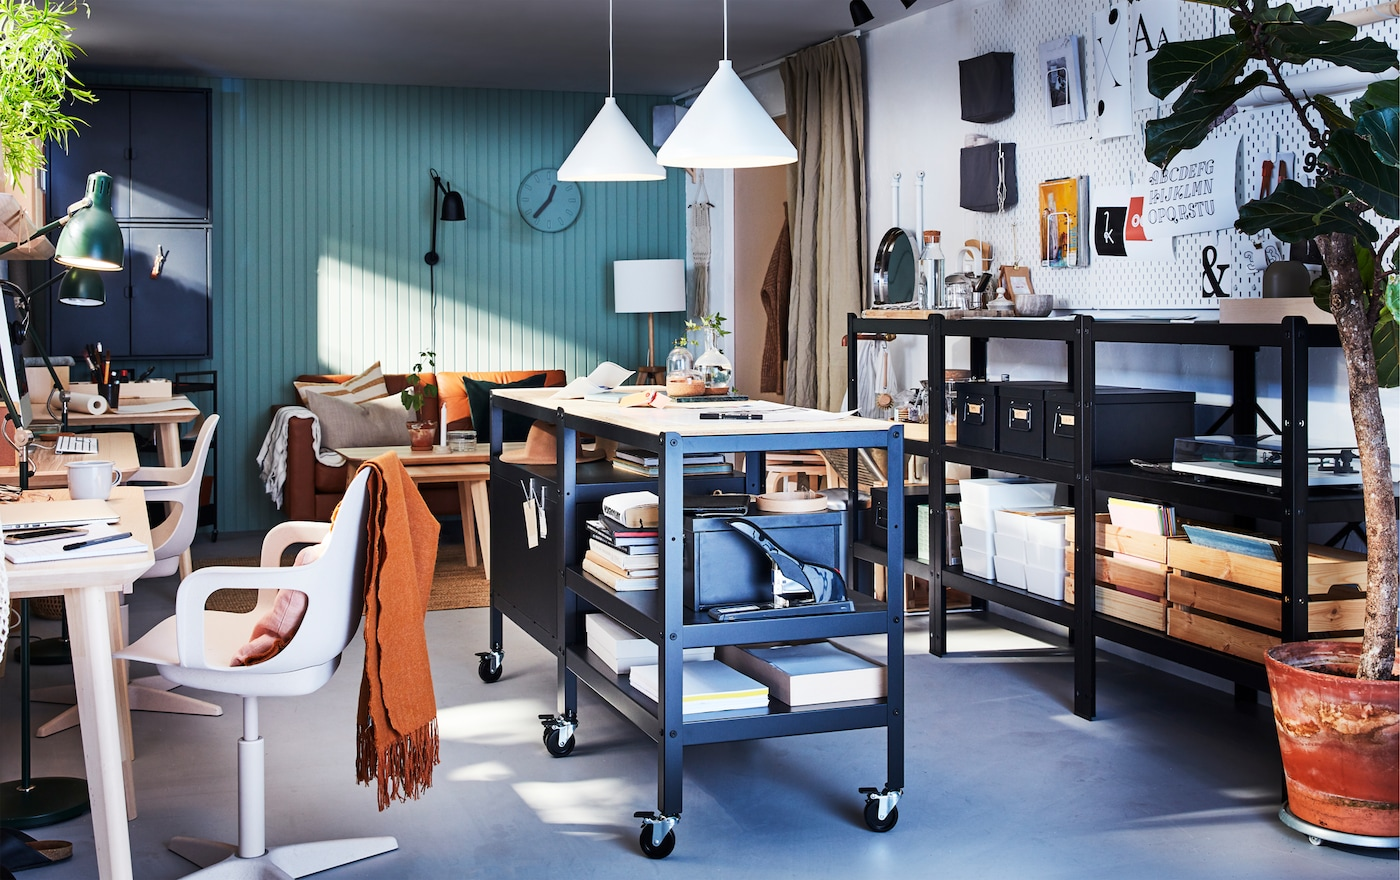 Workspace with two BROR black/wood trolleys with storage on castors, two white pendant lamps and a long black shelving unit.